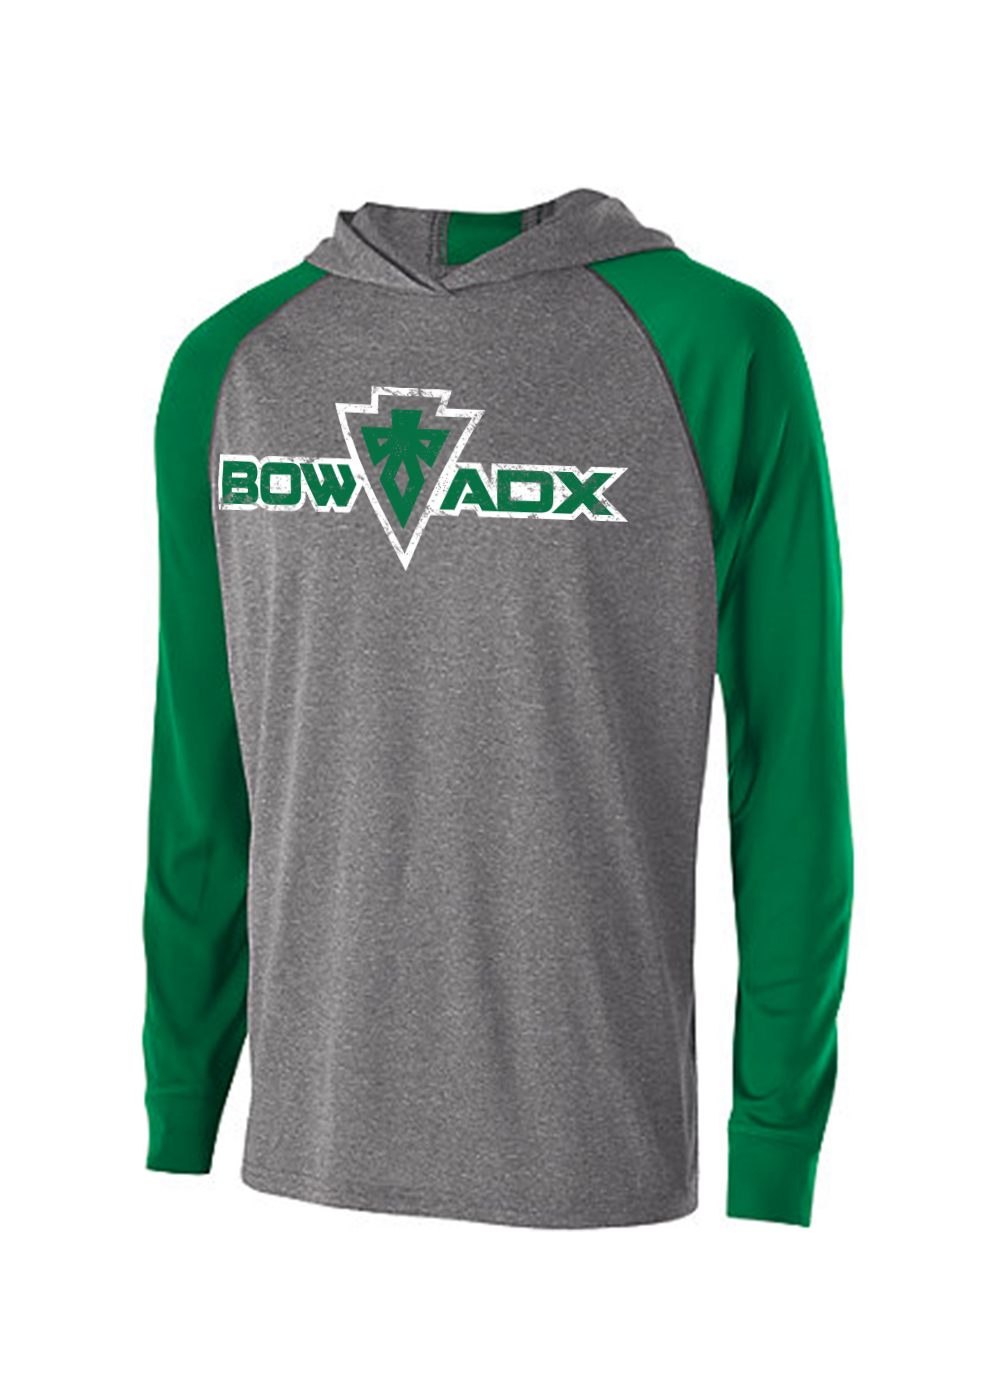 Click image for larger version.  Name:Long-Sleeve-Heather-Graphite-Kelly-Green-Pullover-Hoodie.jpg Views:7 Size:360.1 KB ID:6290105